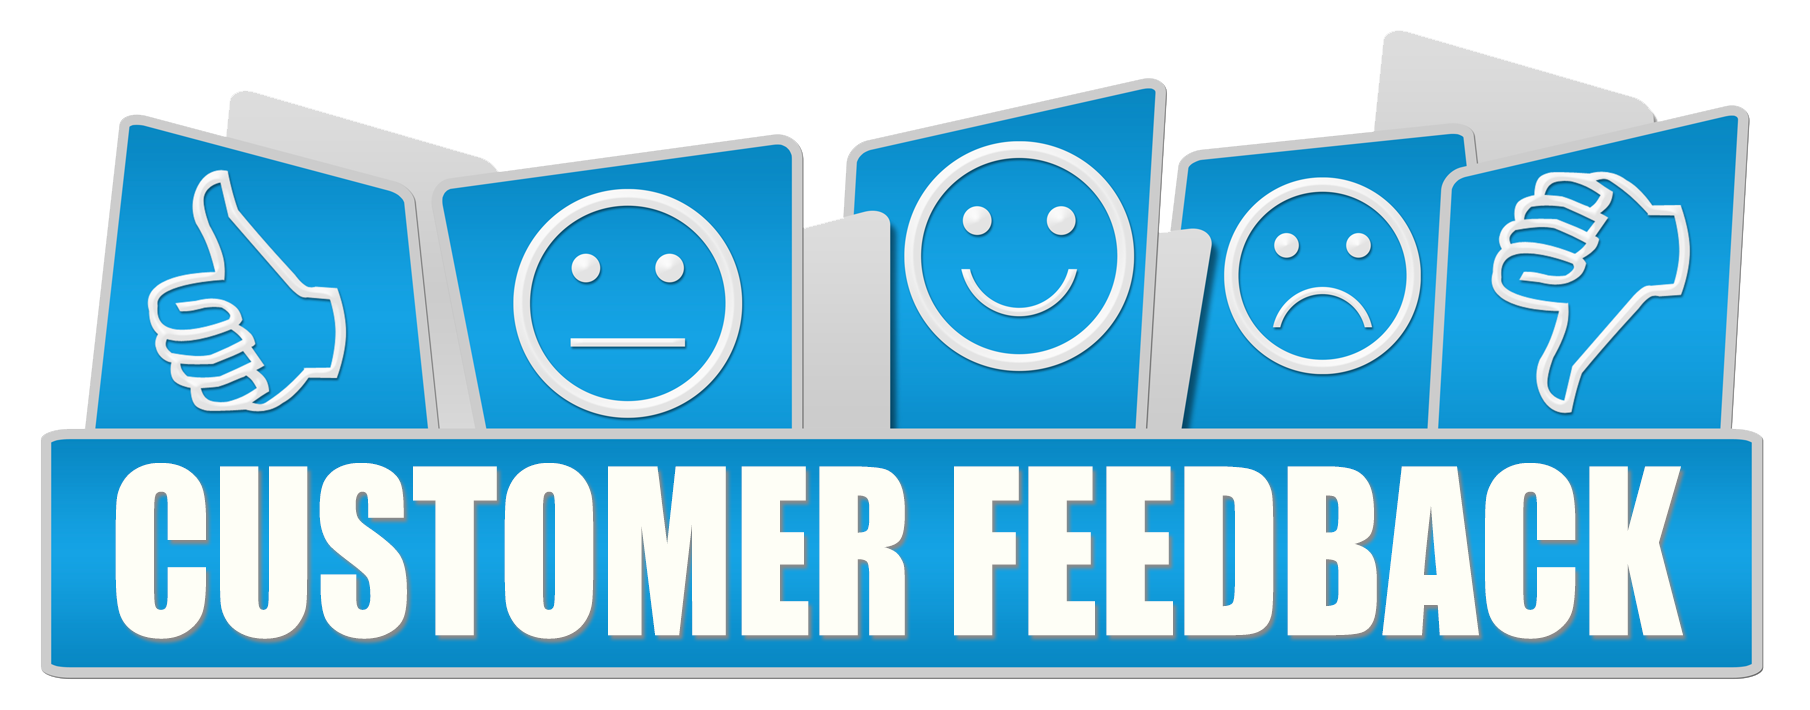 Lajes Customer Feedback